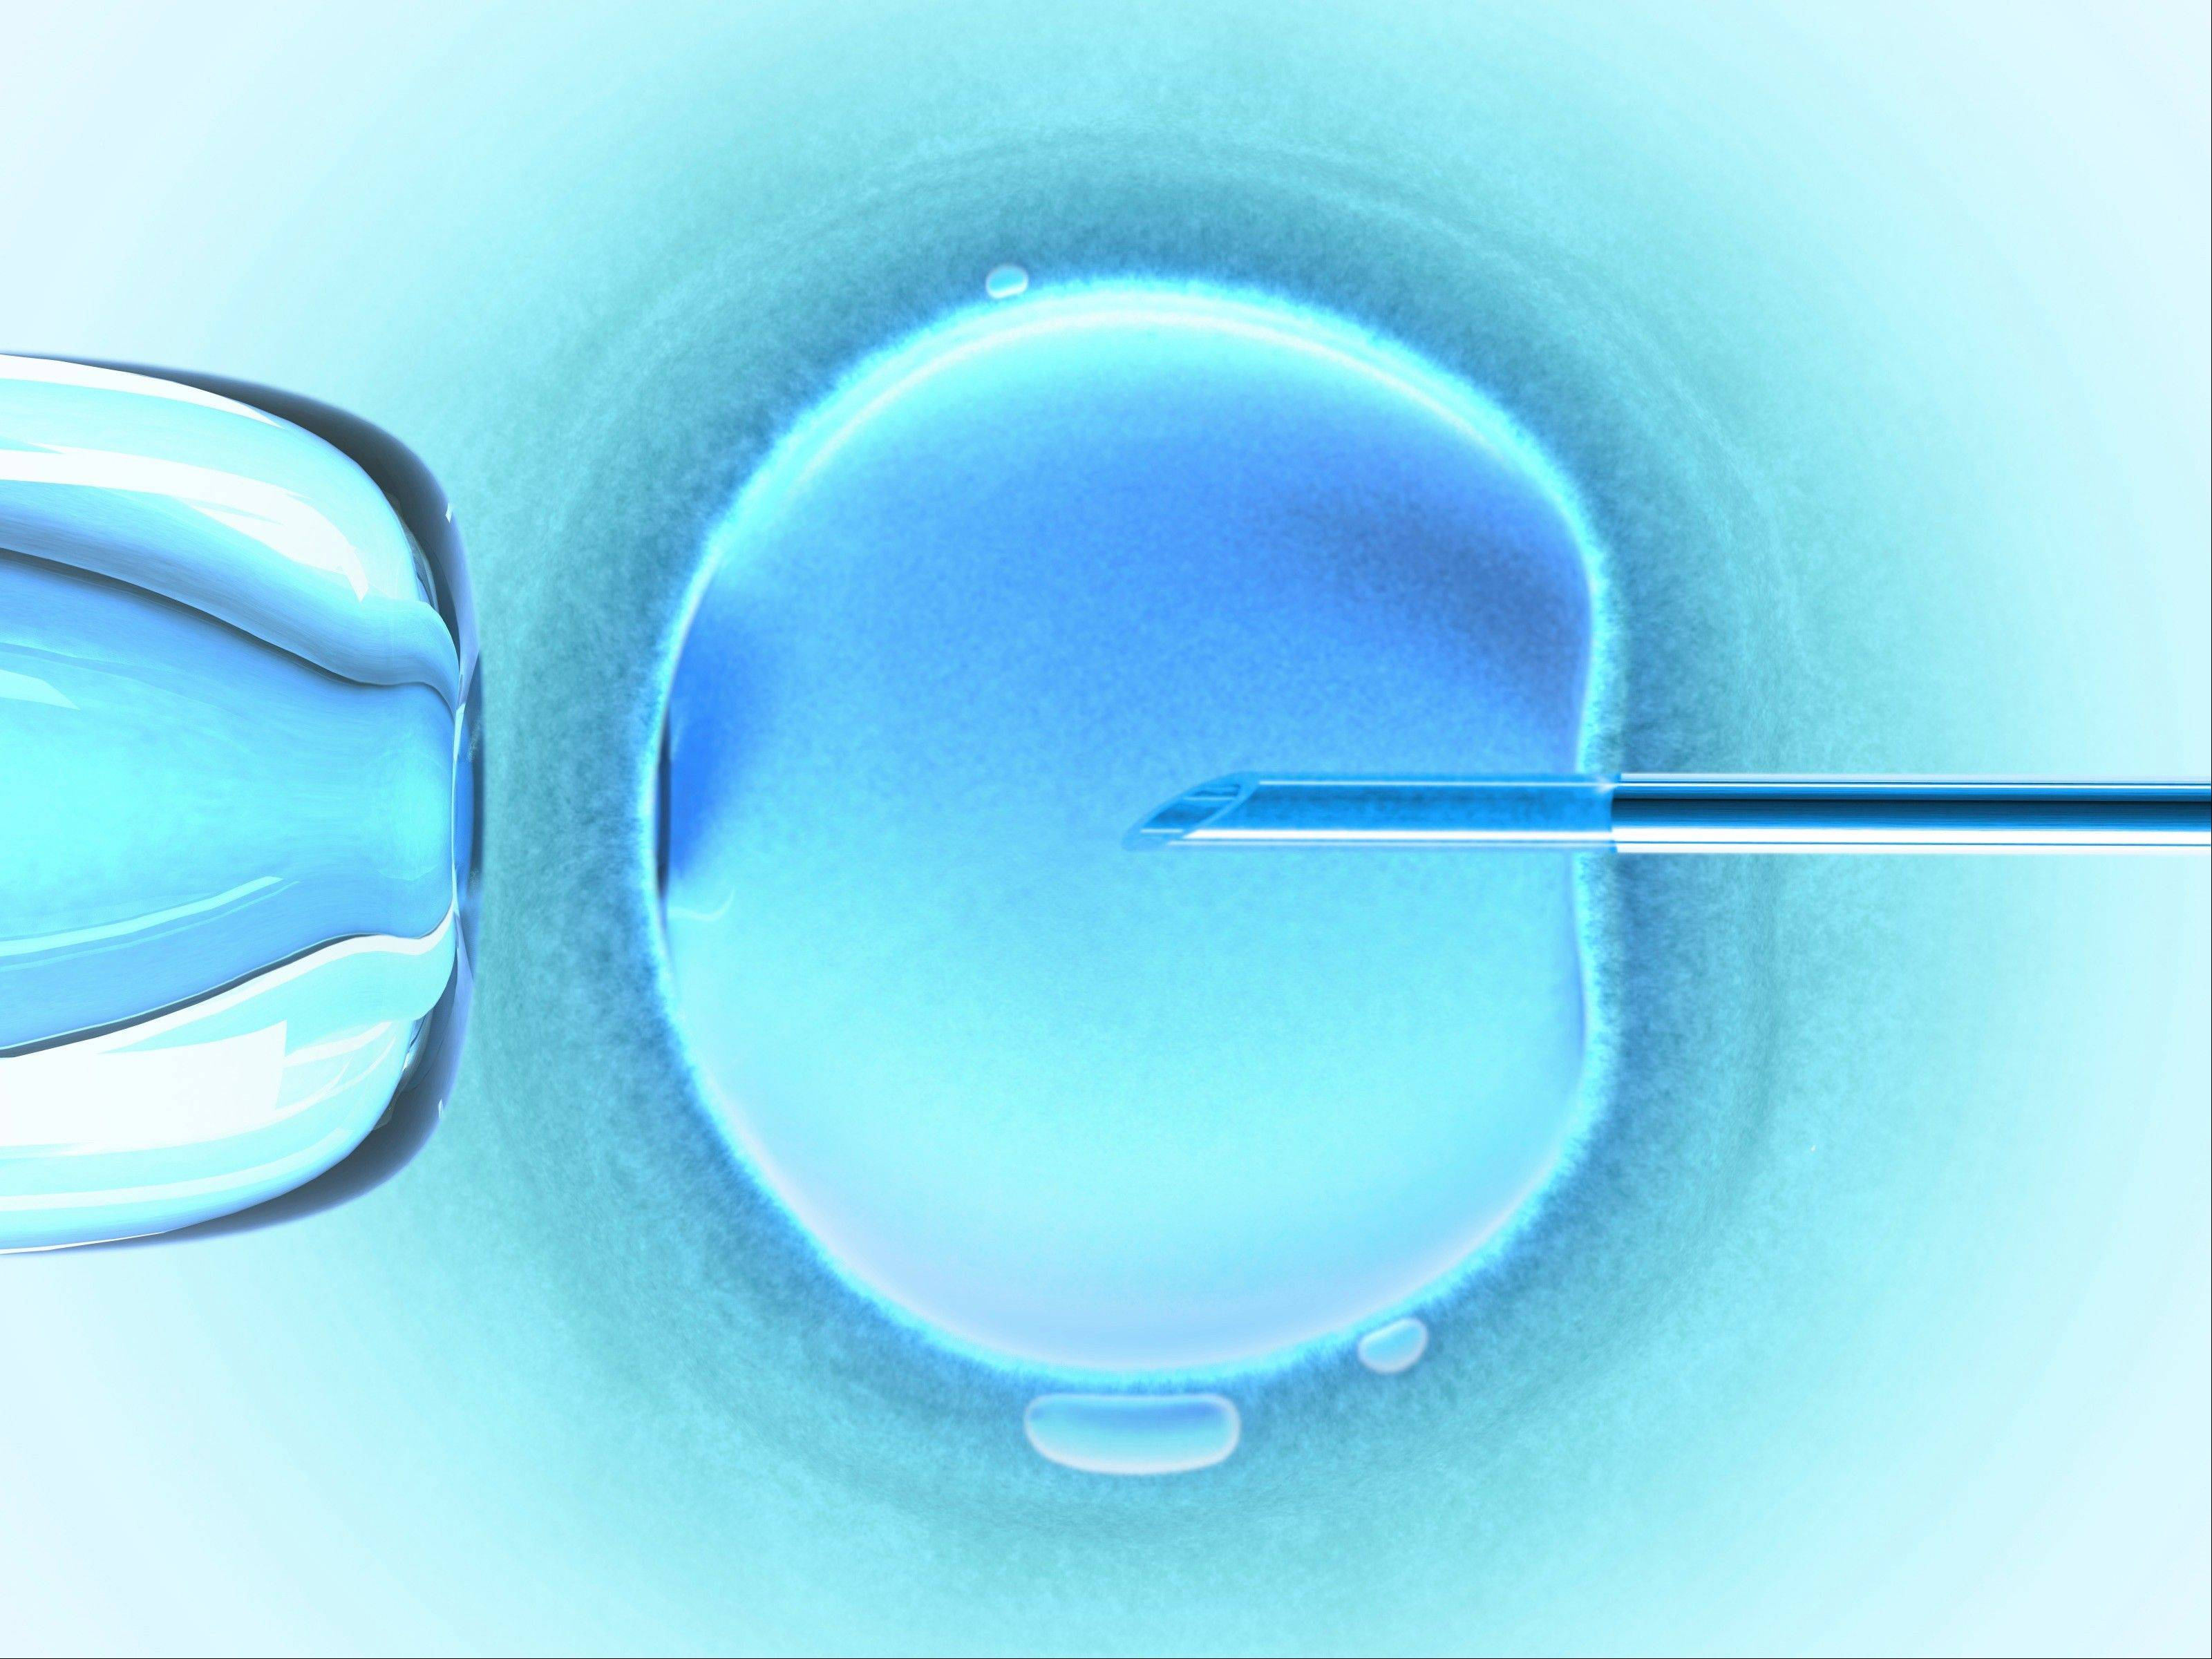 Donor eggs are often fertilized by a doctor using a microscope in a process called IVF.